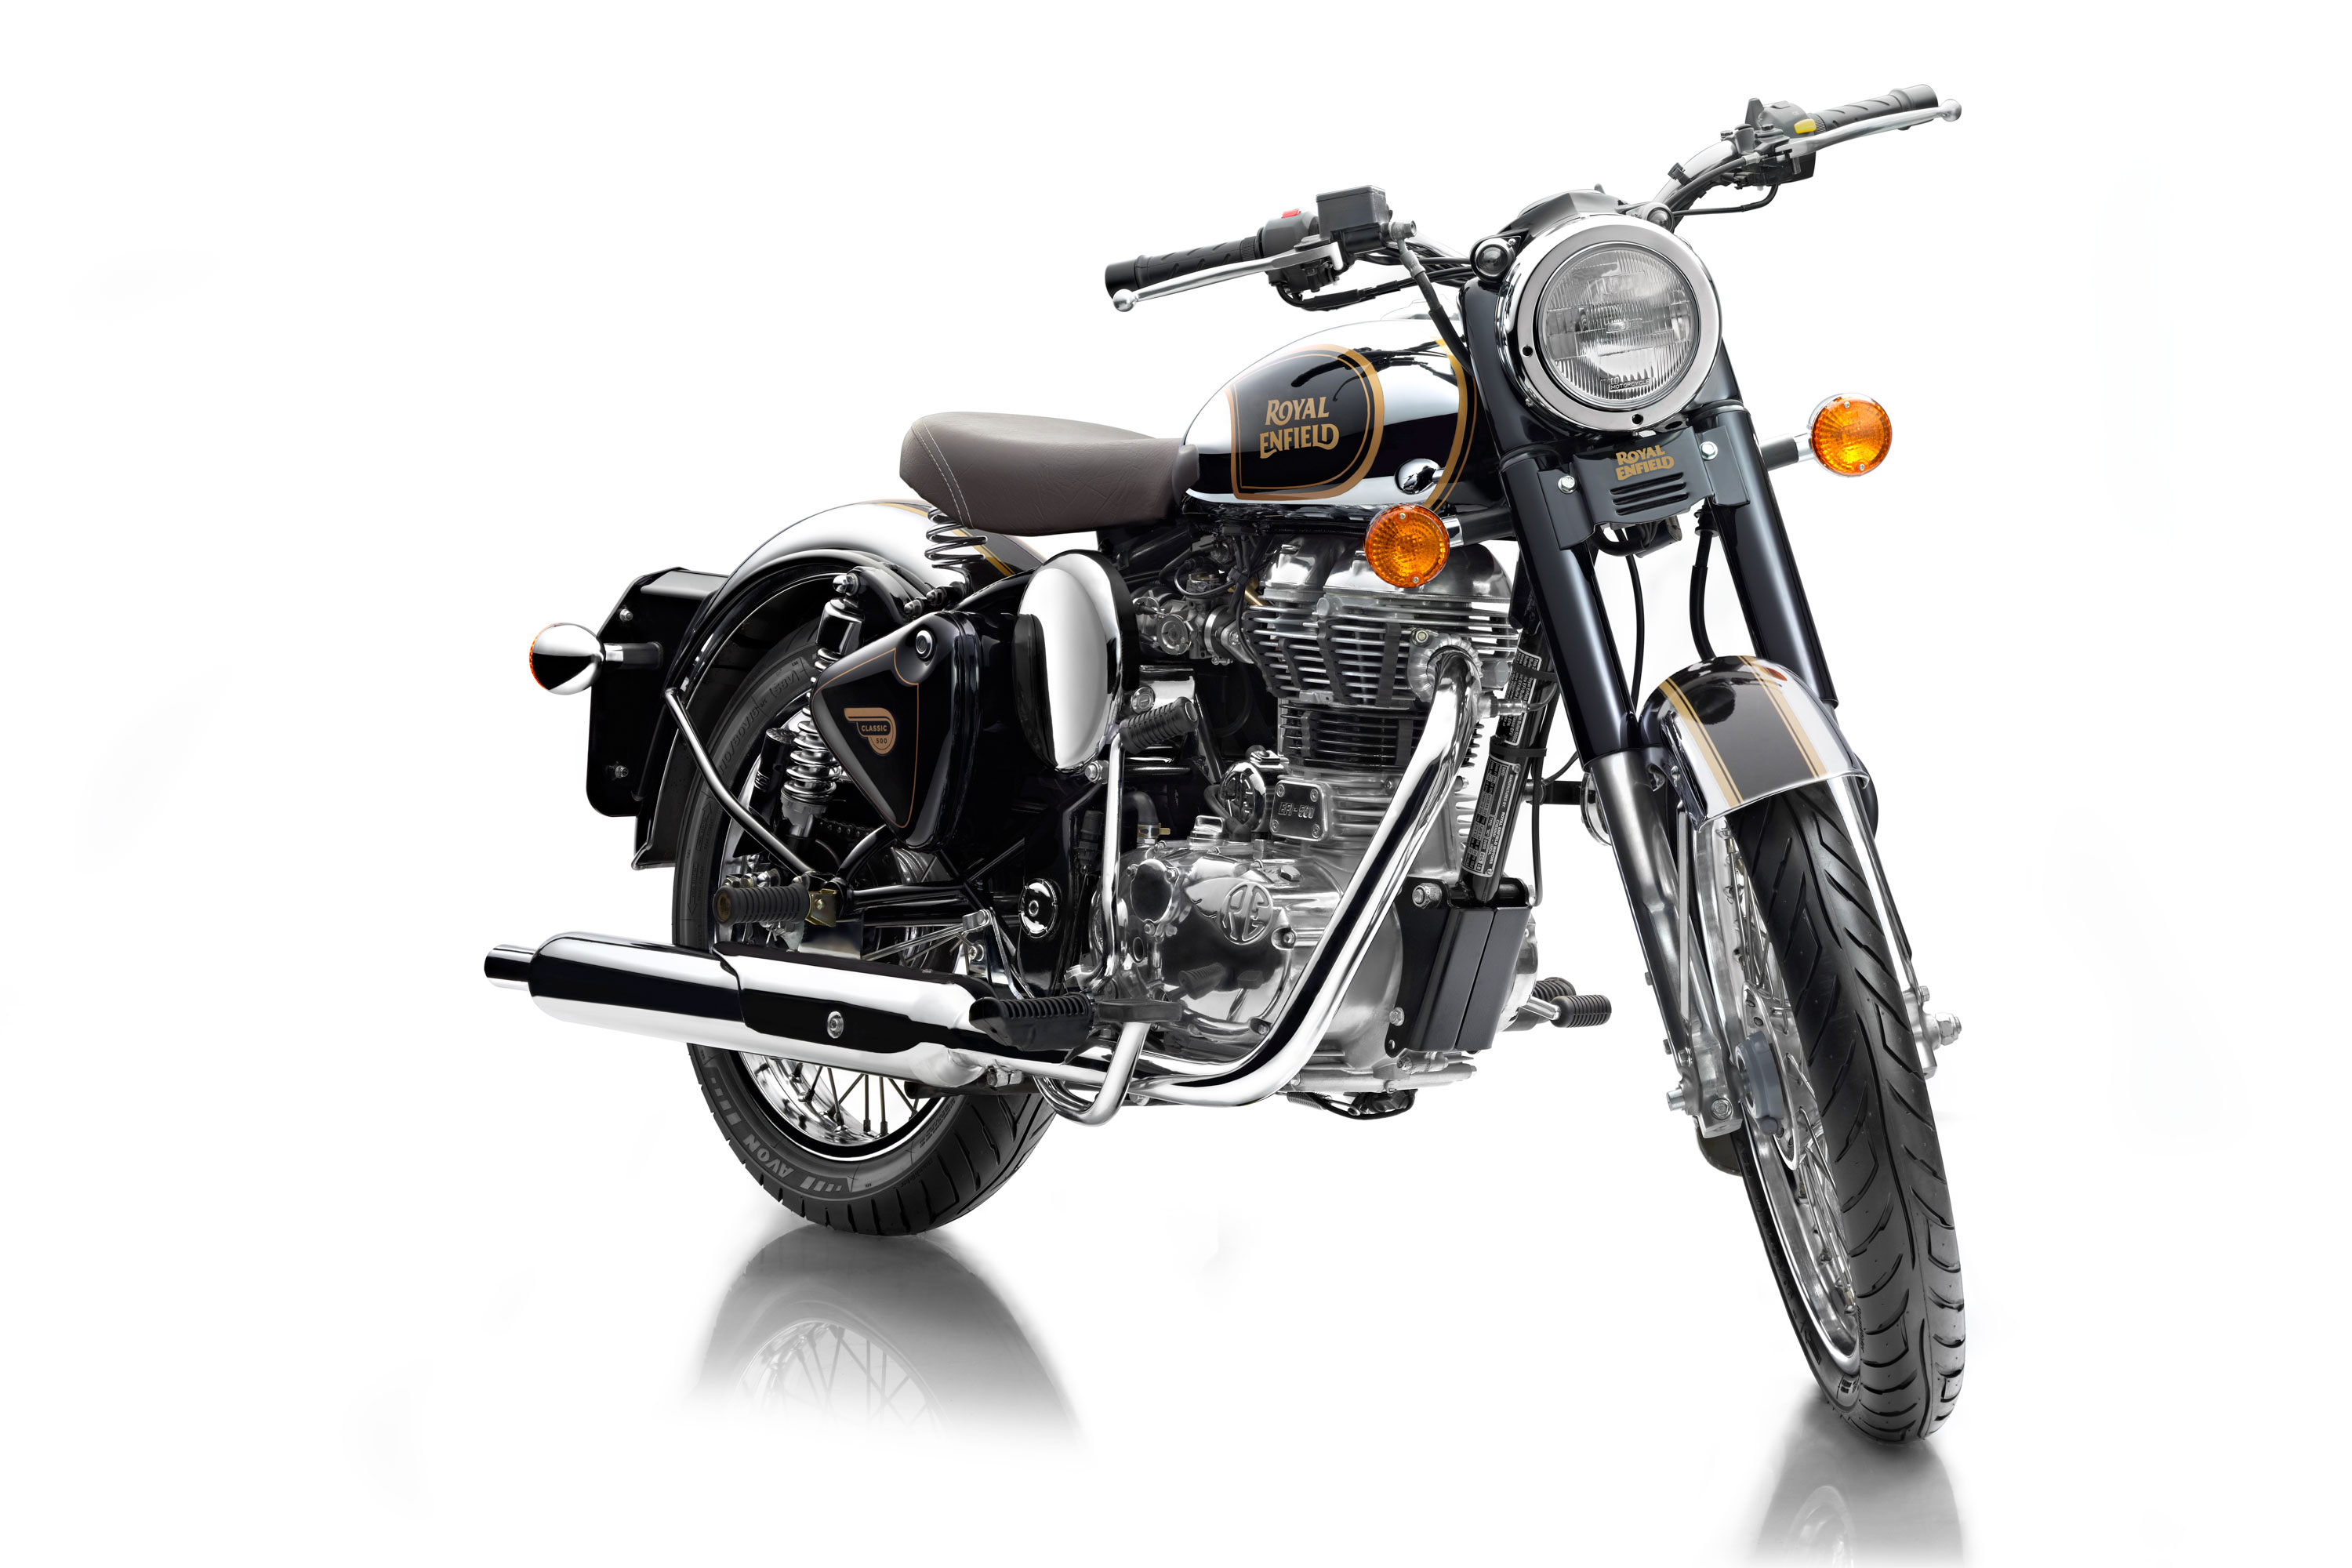 royalenfield_classic500_chromeblack_003